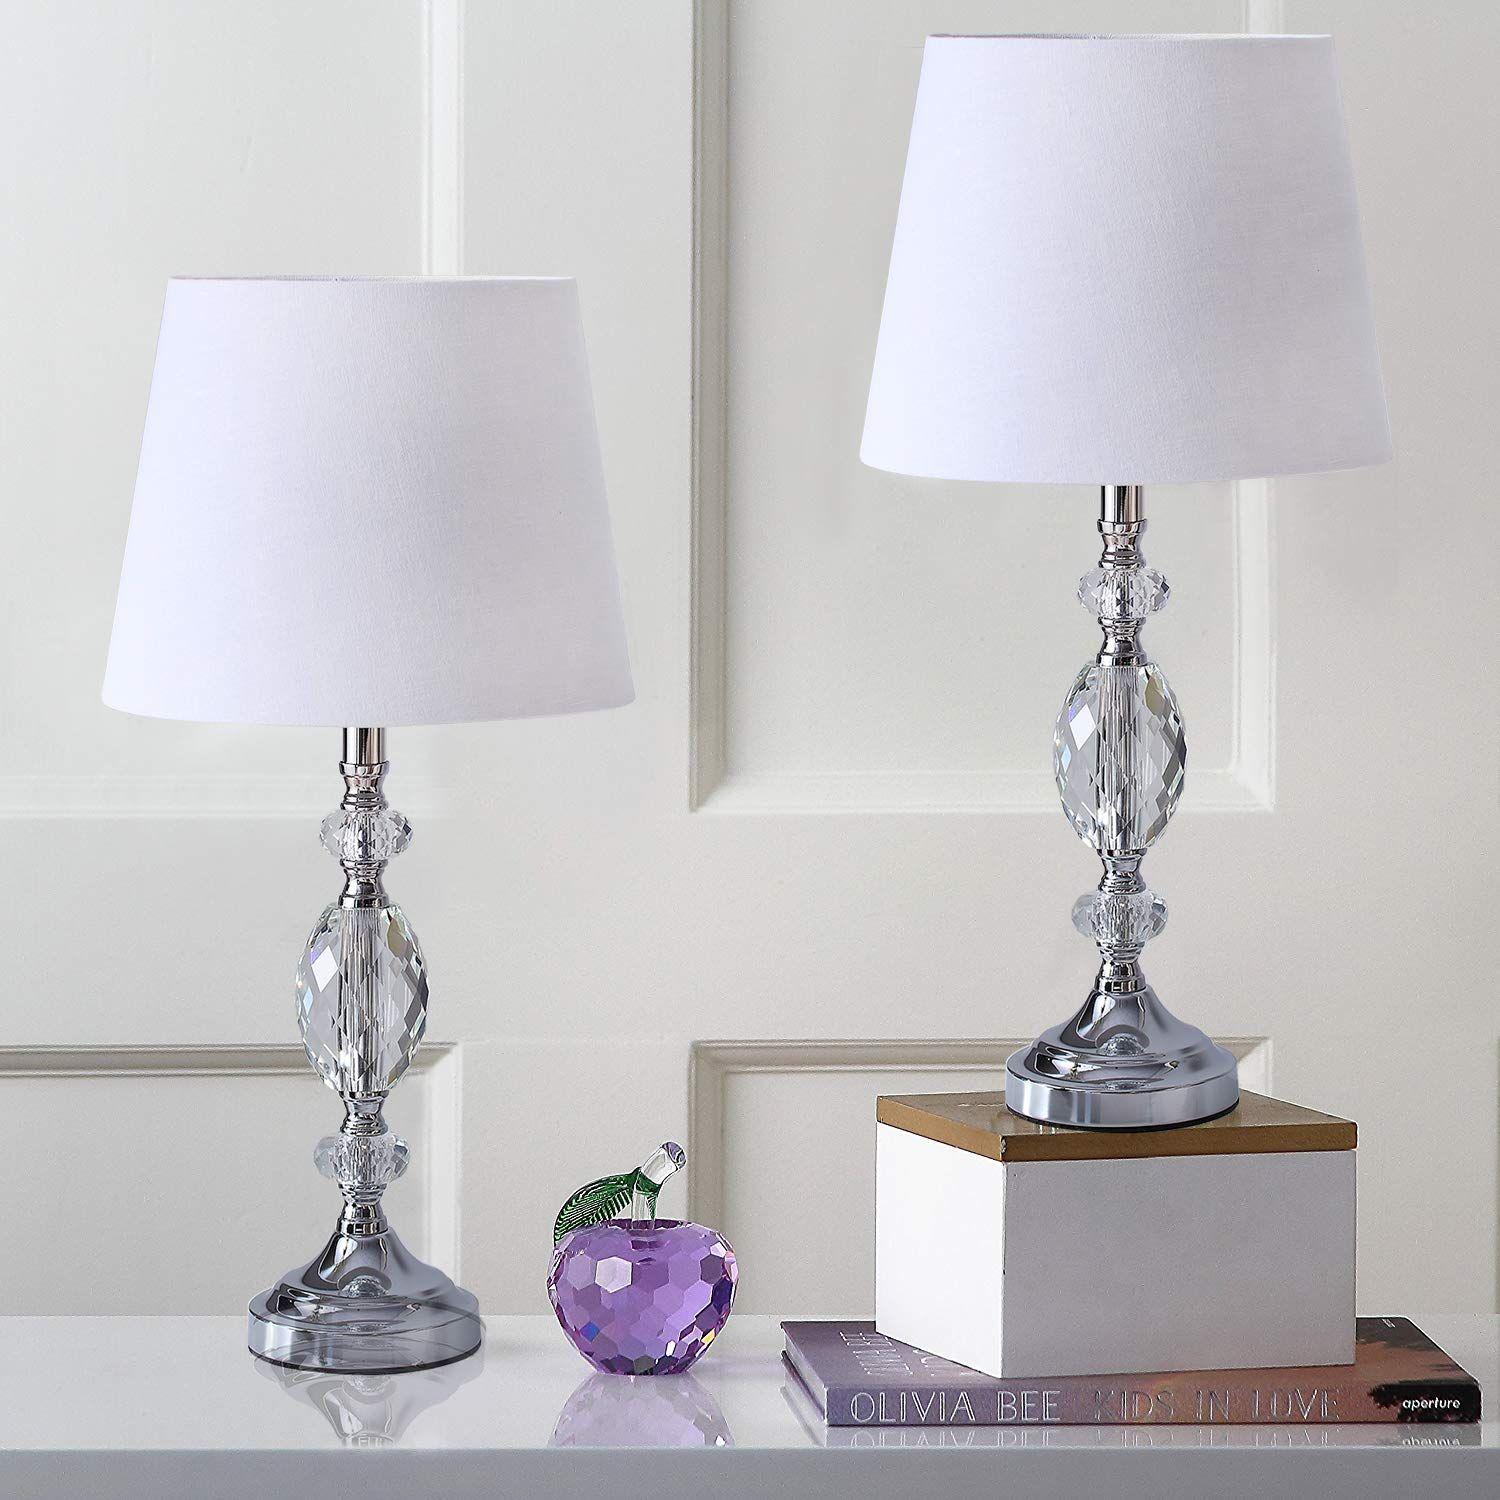 Pauwer Modern Clear Crystal Table Lamps Set Of 2 Bedroom Living Room Bedside 19 Inch Chrome Table Lam Crystal Table Lamps Bedroom Lamps Table Lamps For Bedroom